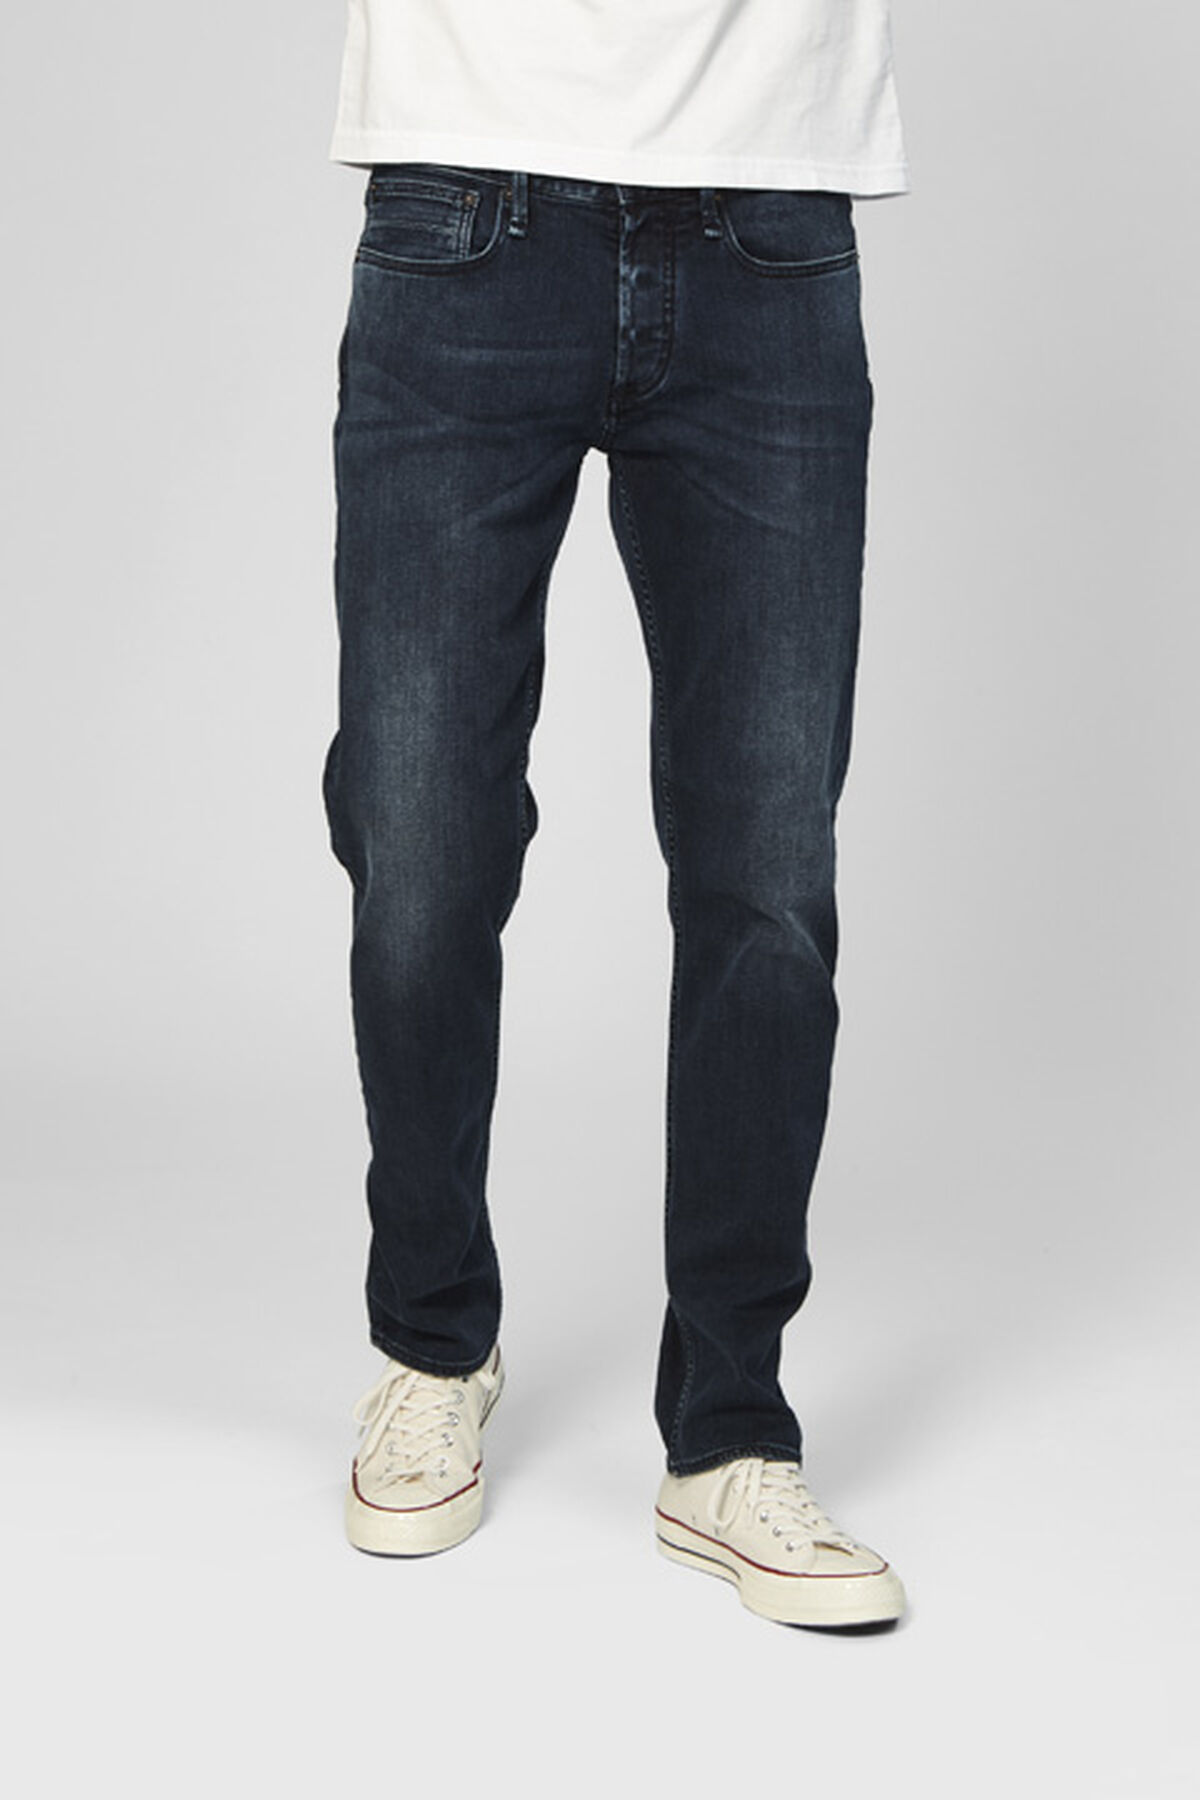 Razor Slim Fit Jeans - FDB